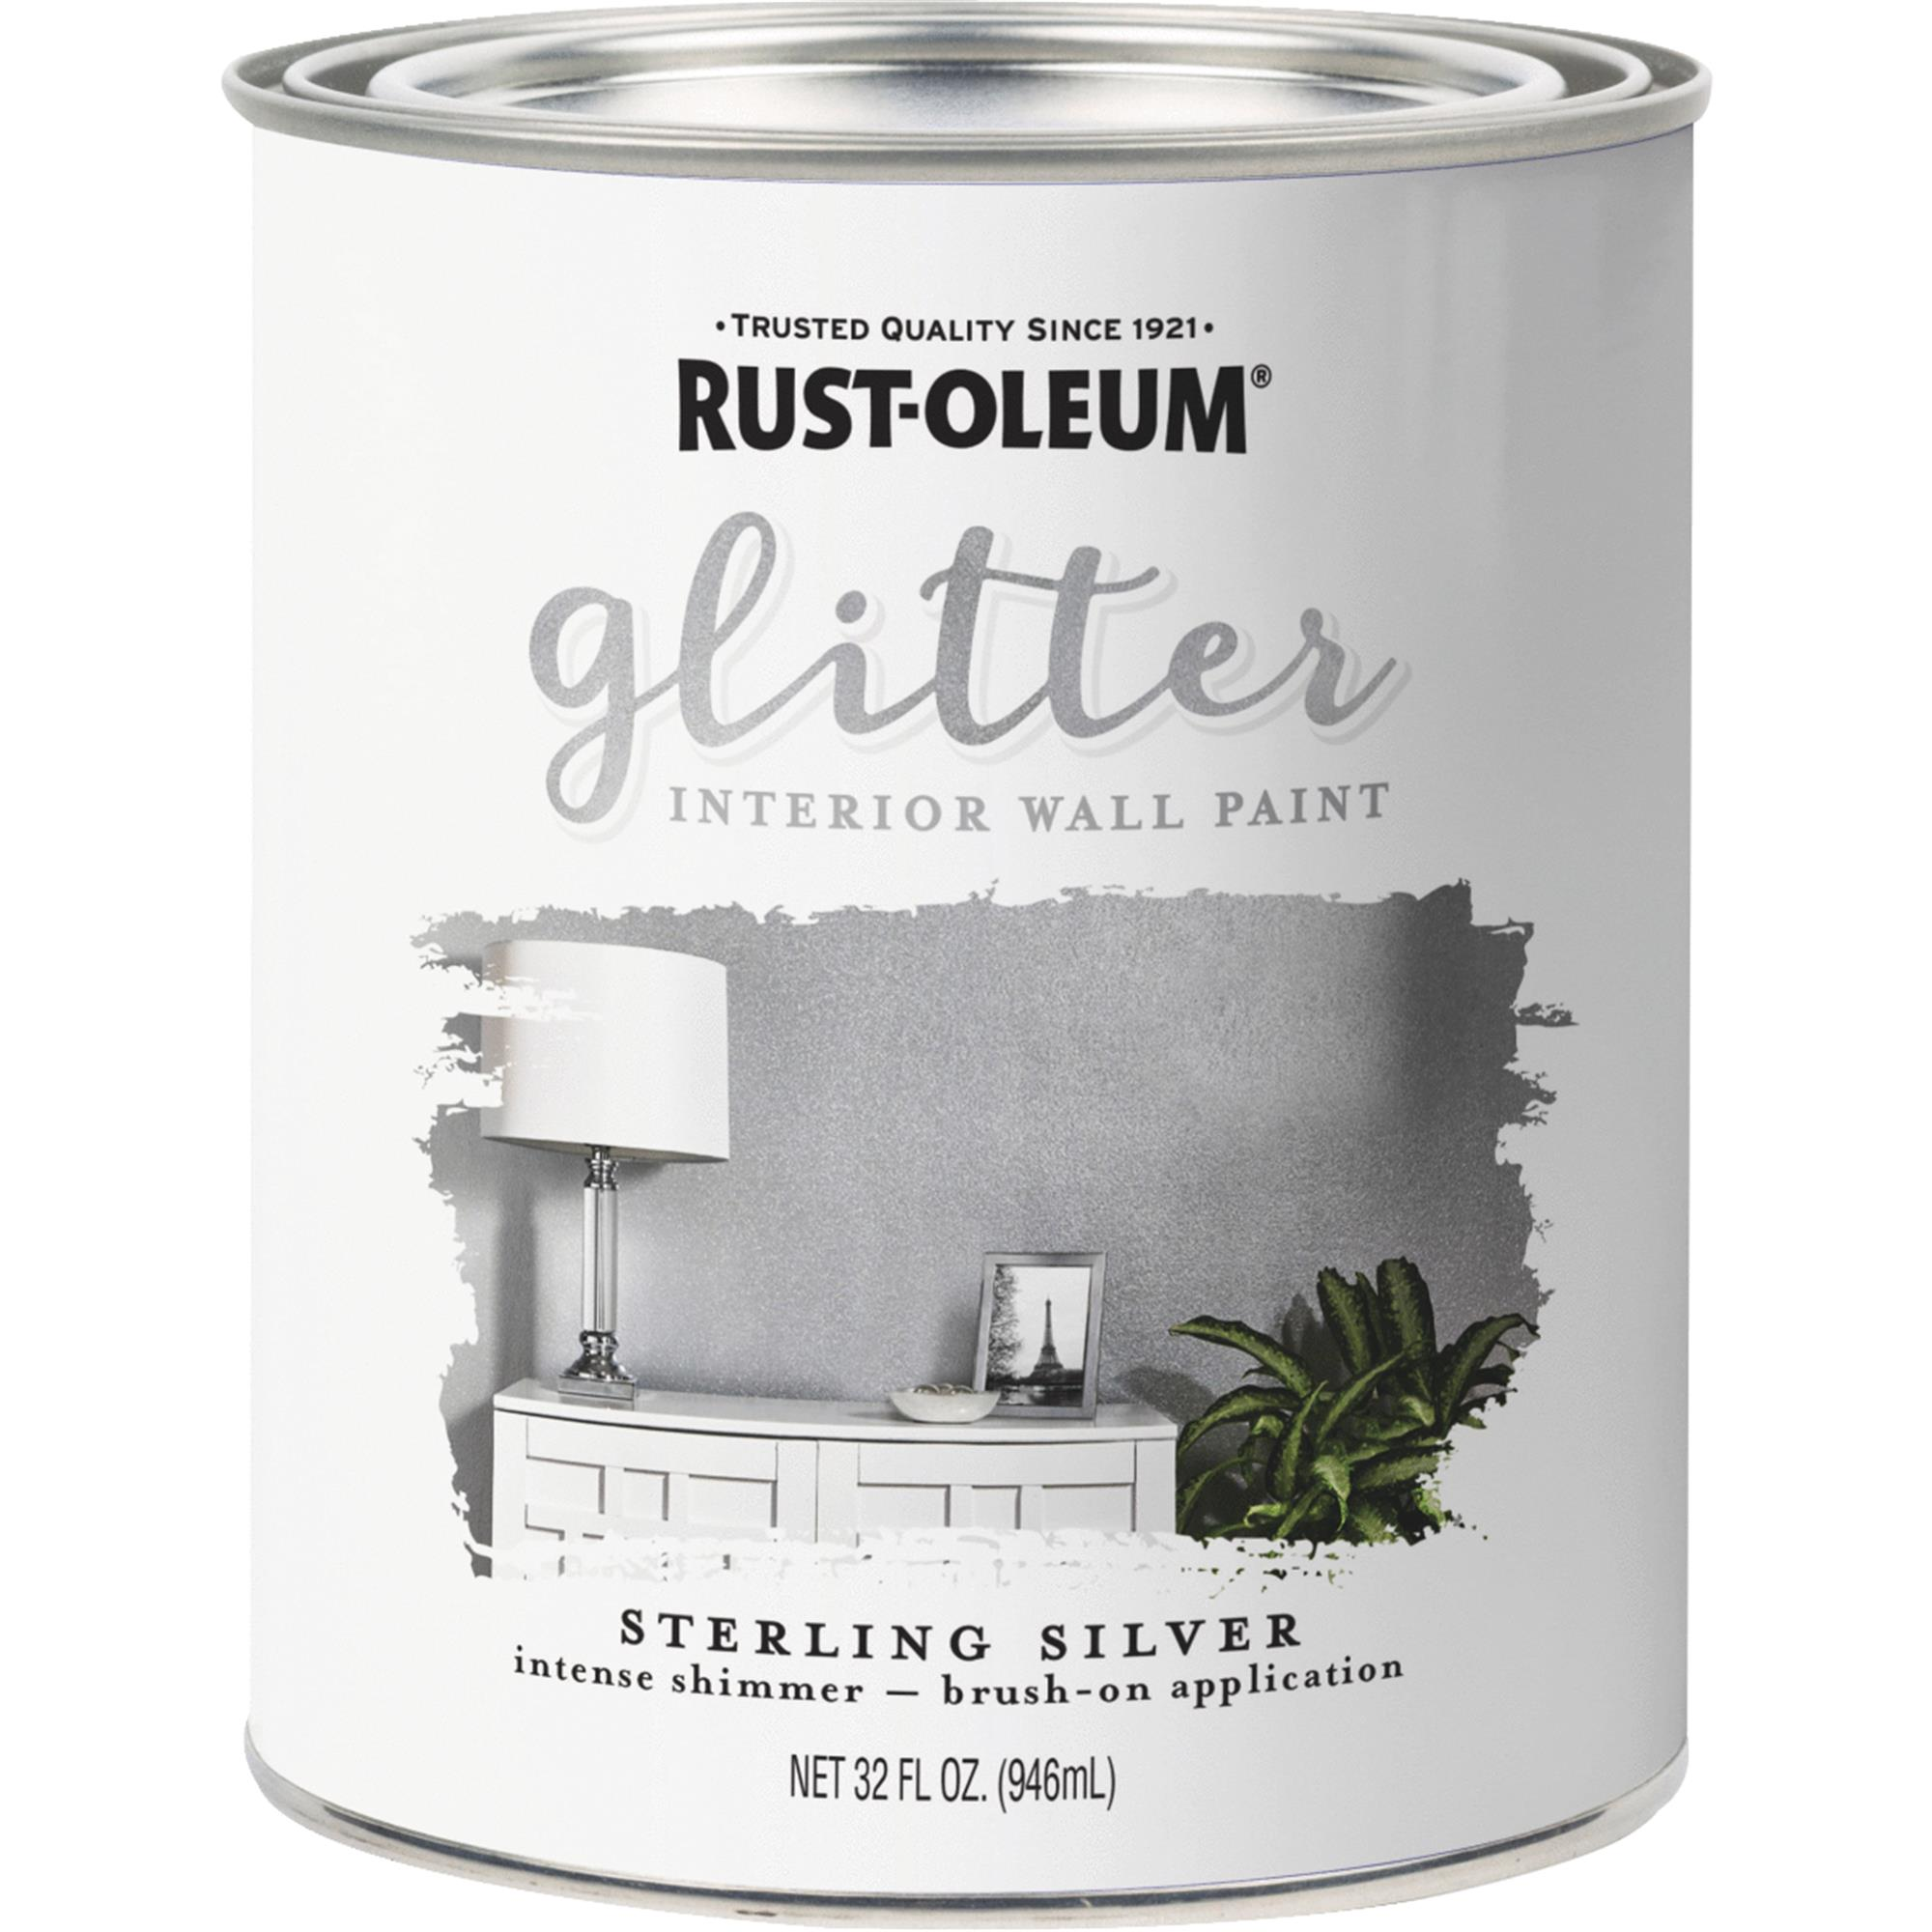 Rust-Oleum Sterling Silver Glitter Interior Wall Paint, Qt